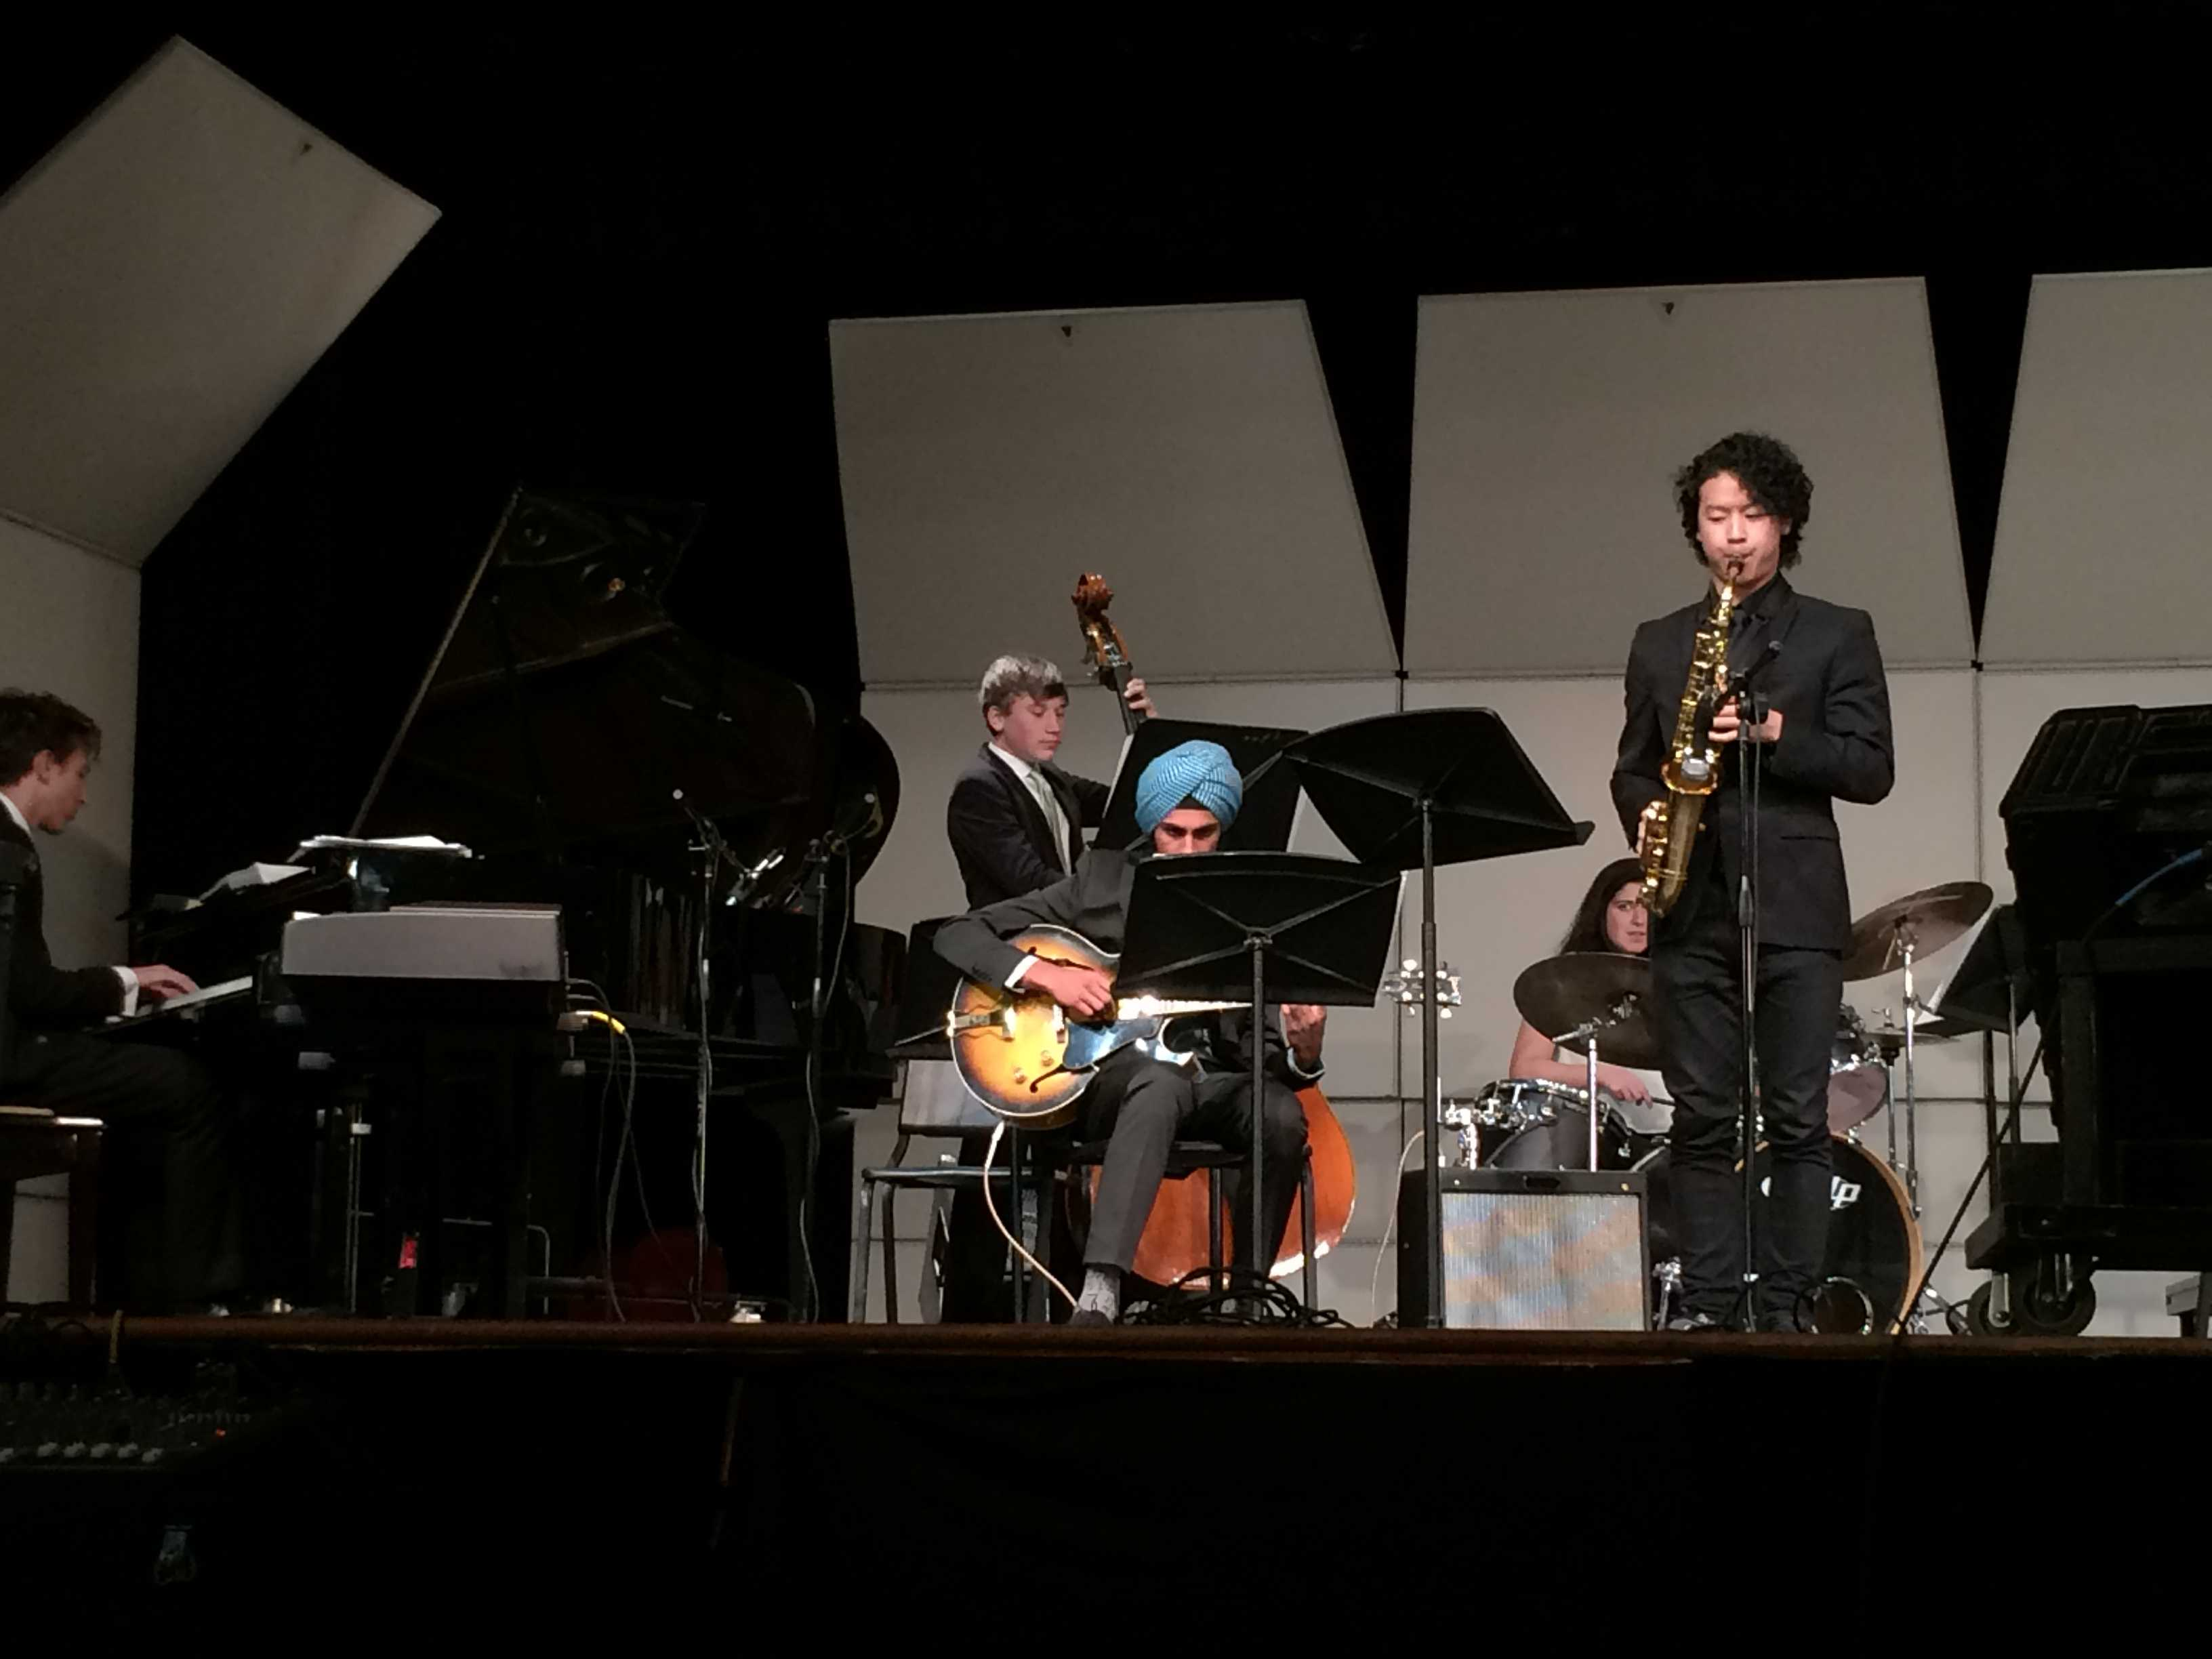 Jazz spring show, a showcase of talent